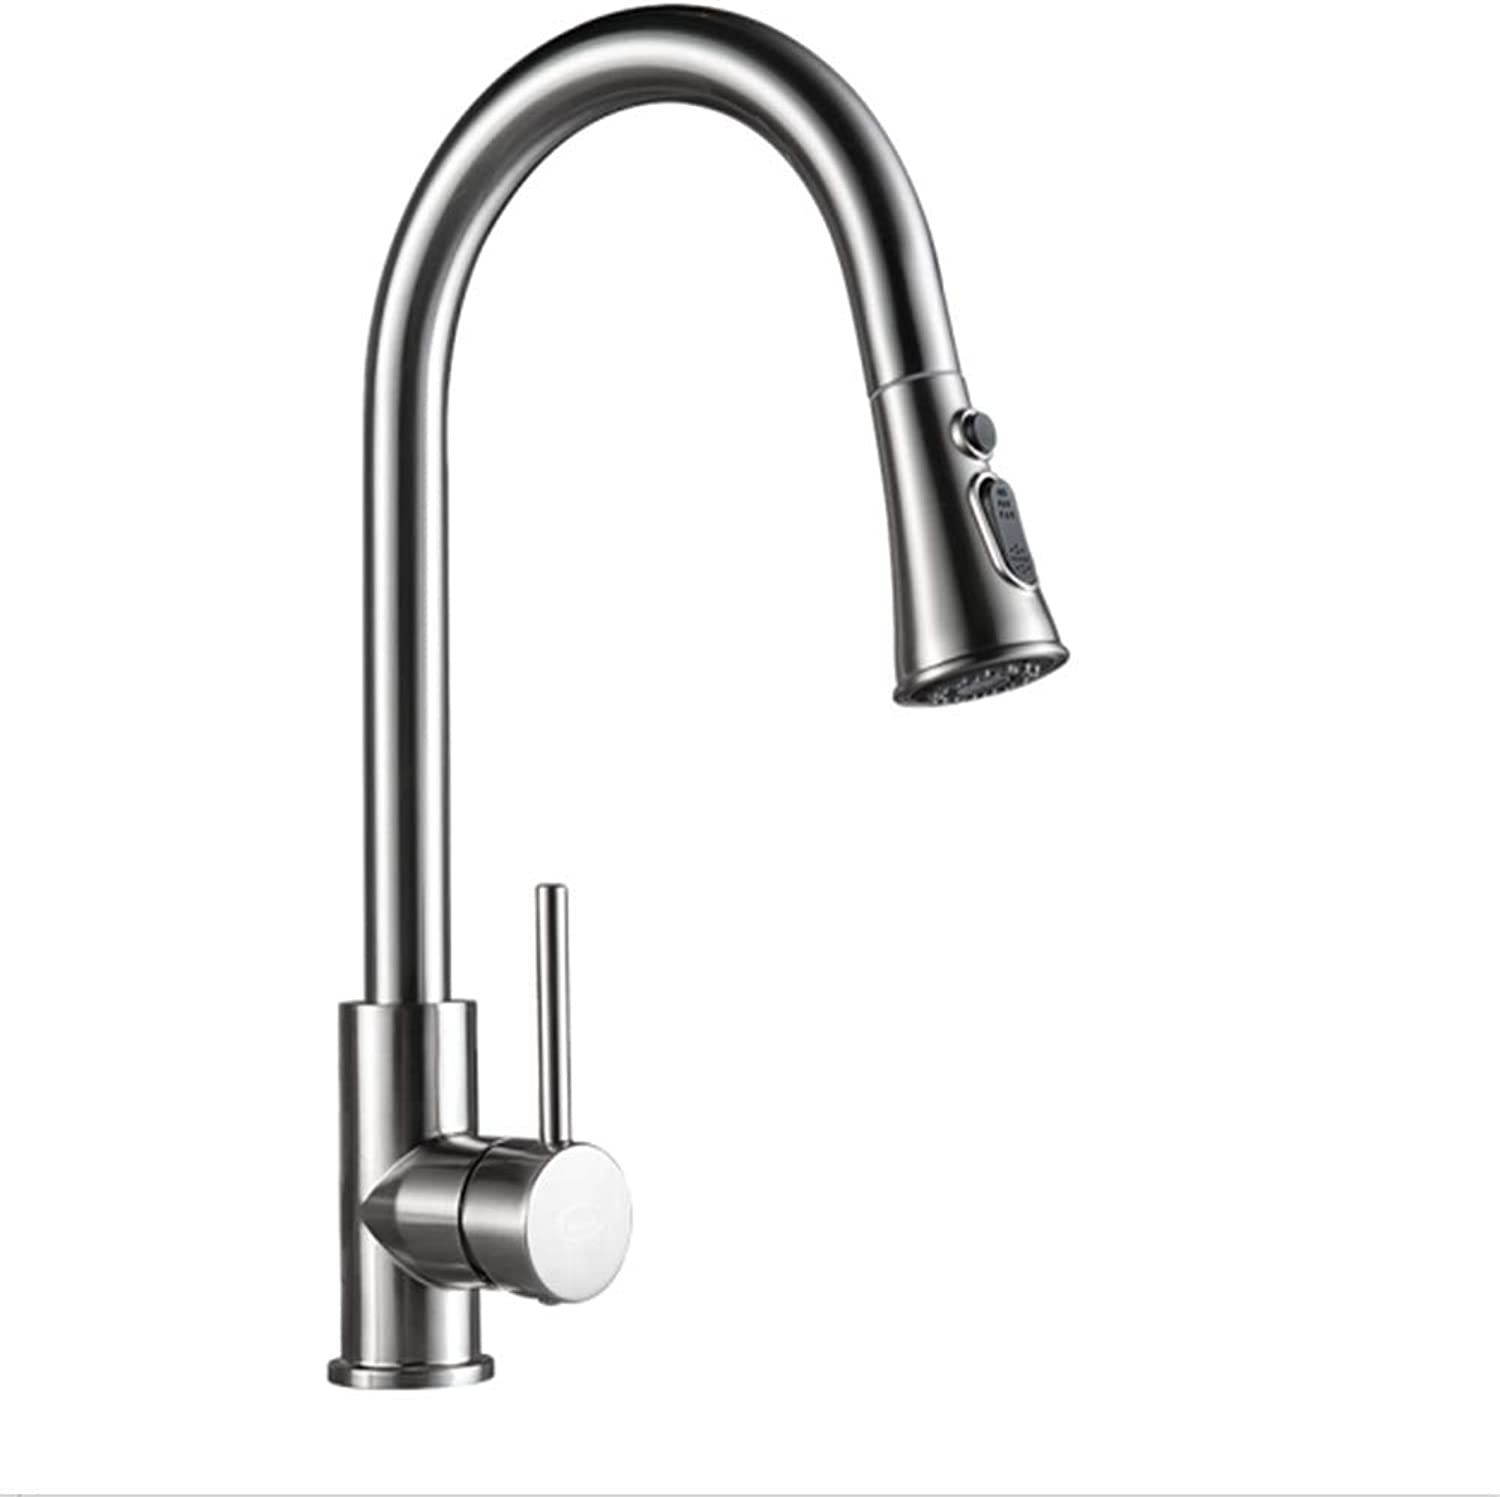 Kitchen Taps Faucet Modern Kitchen Sink Taps Stainless Steel304 Stainless Steel Pull Faucet Cold and Hot redary Sink Faucet Kitchen Dishwash Basin Single Hole Faucet